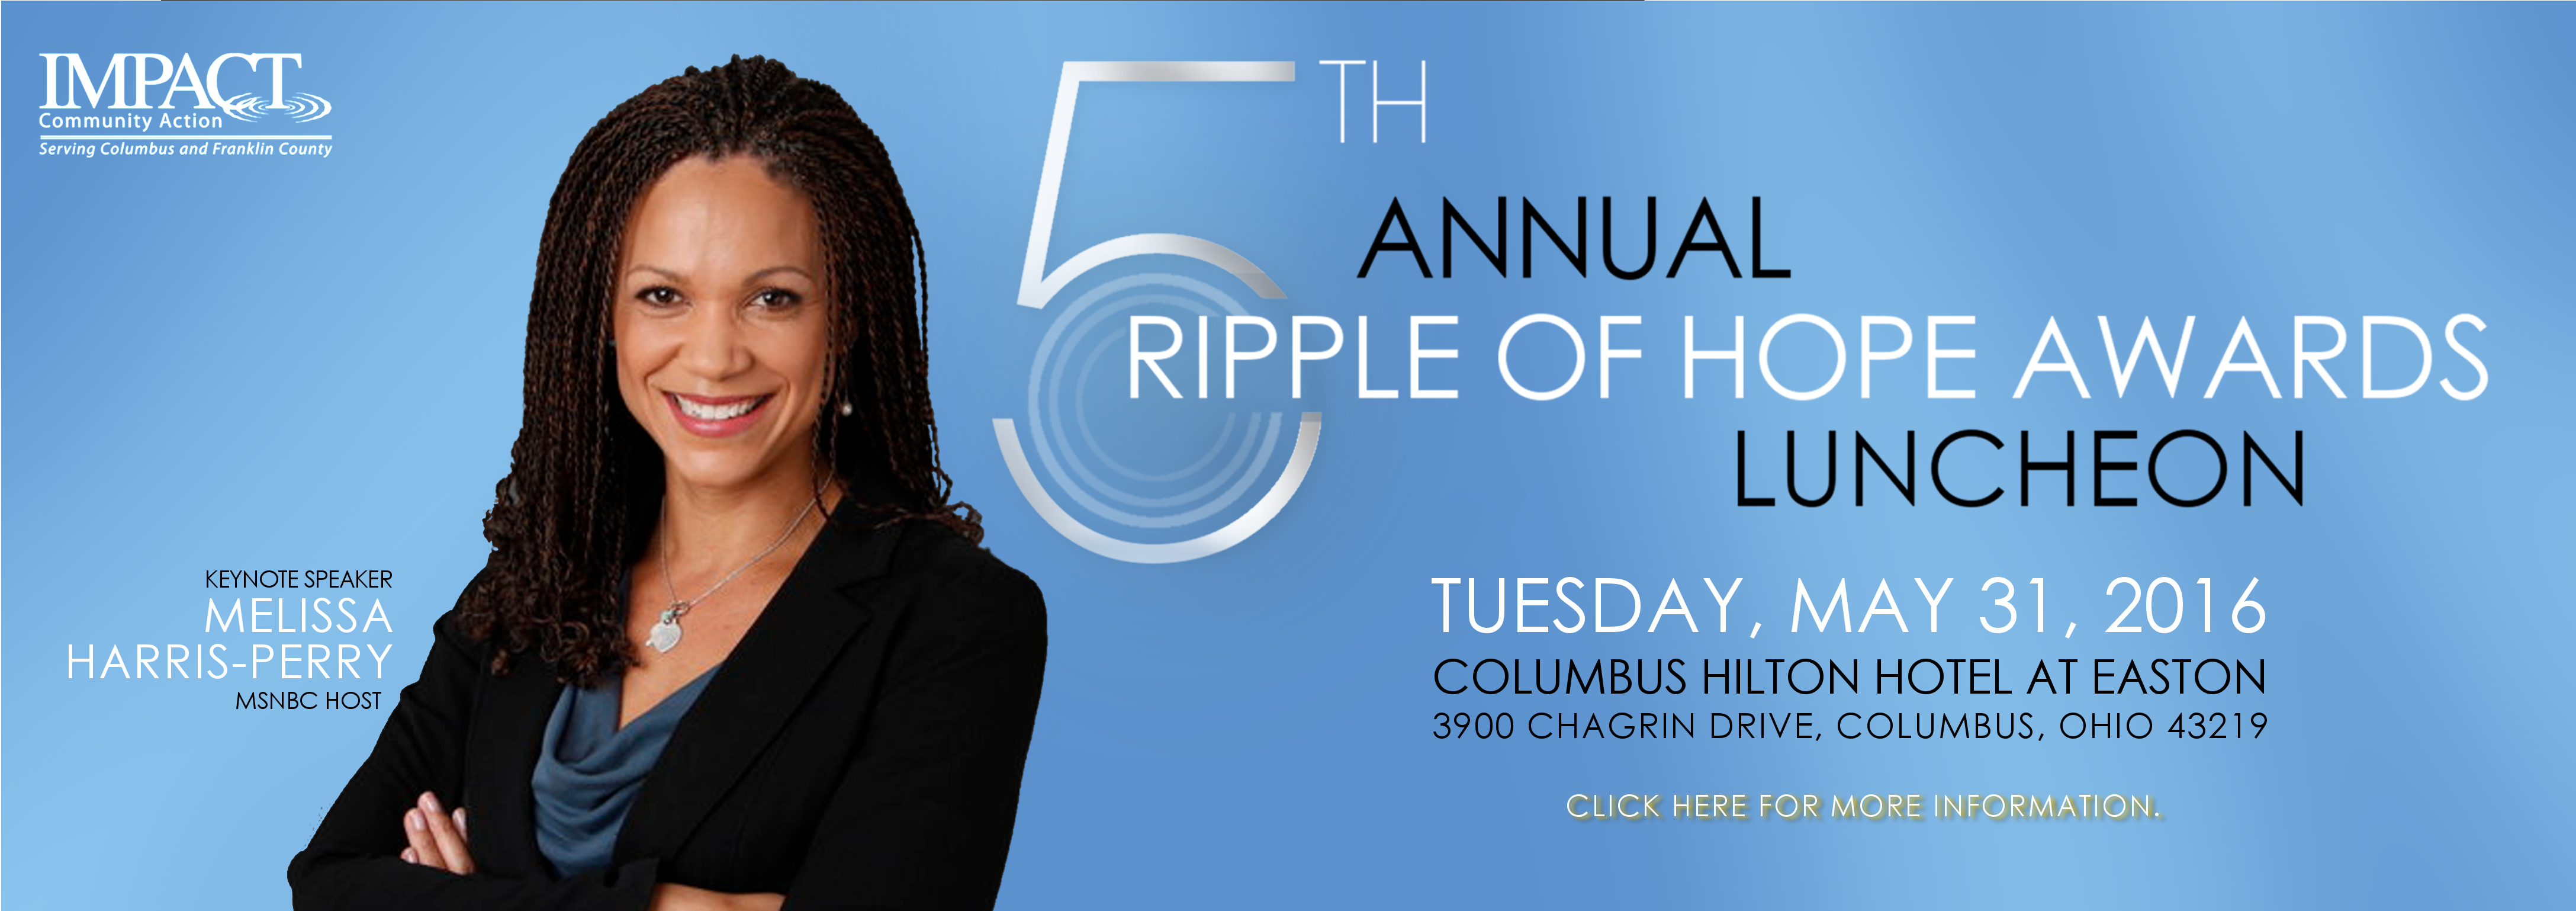 2016 Ripple of Hope Awards Luncheon